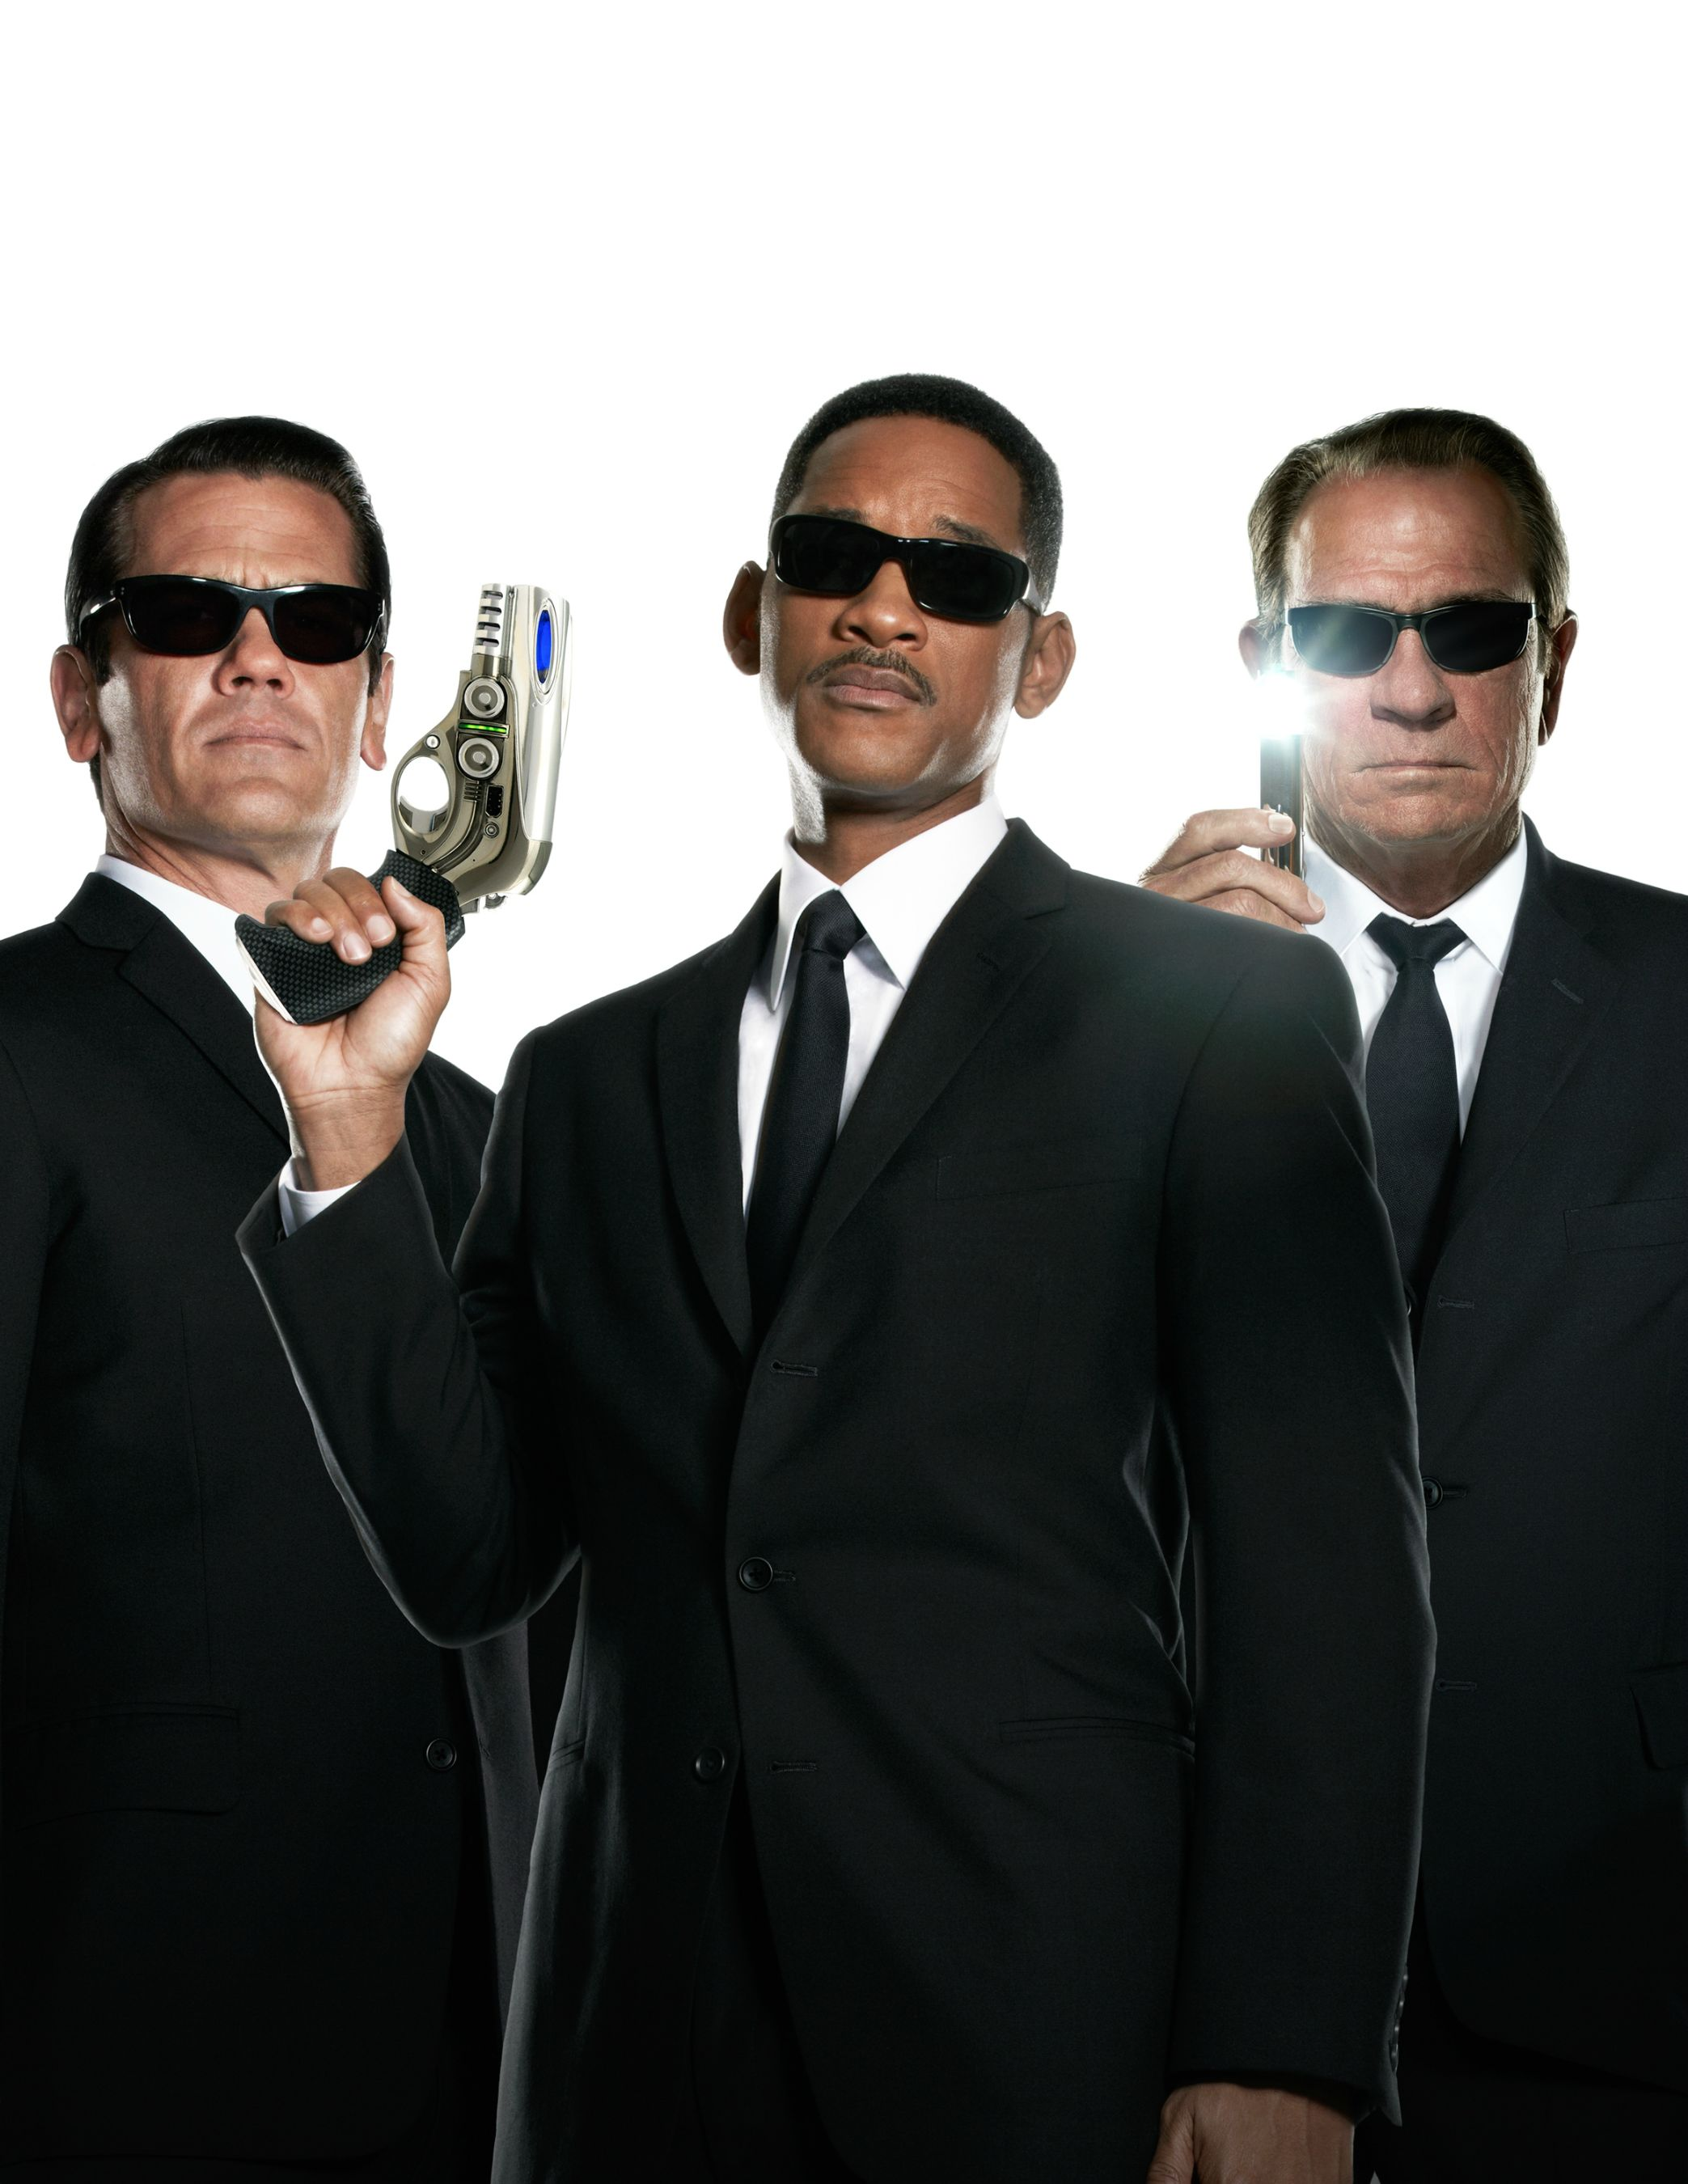 New Promo Art from Men In Black 3 | Unleash The Fanboy